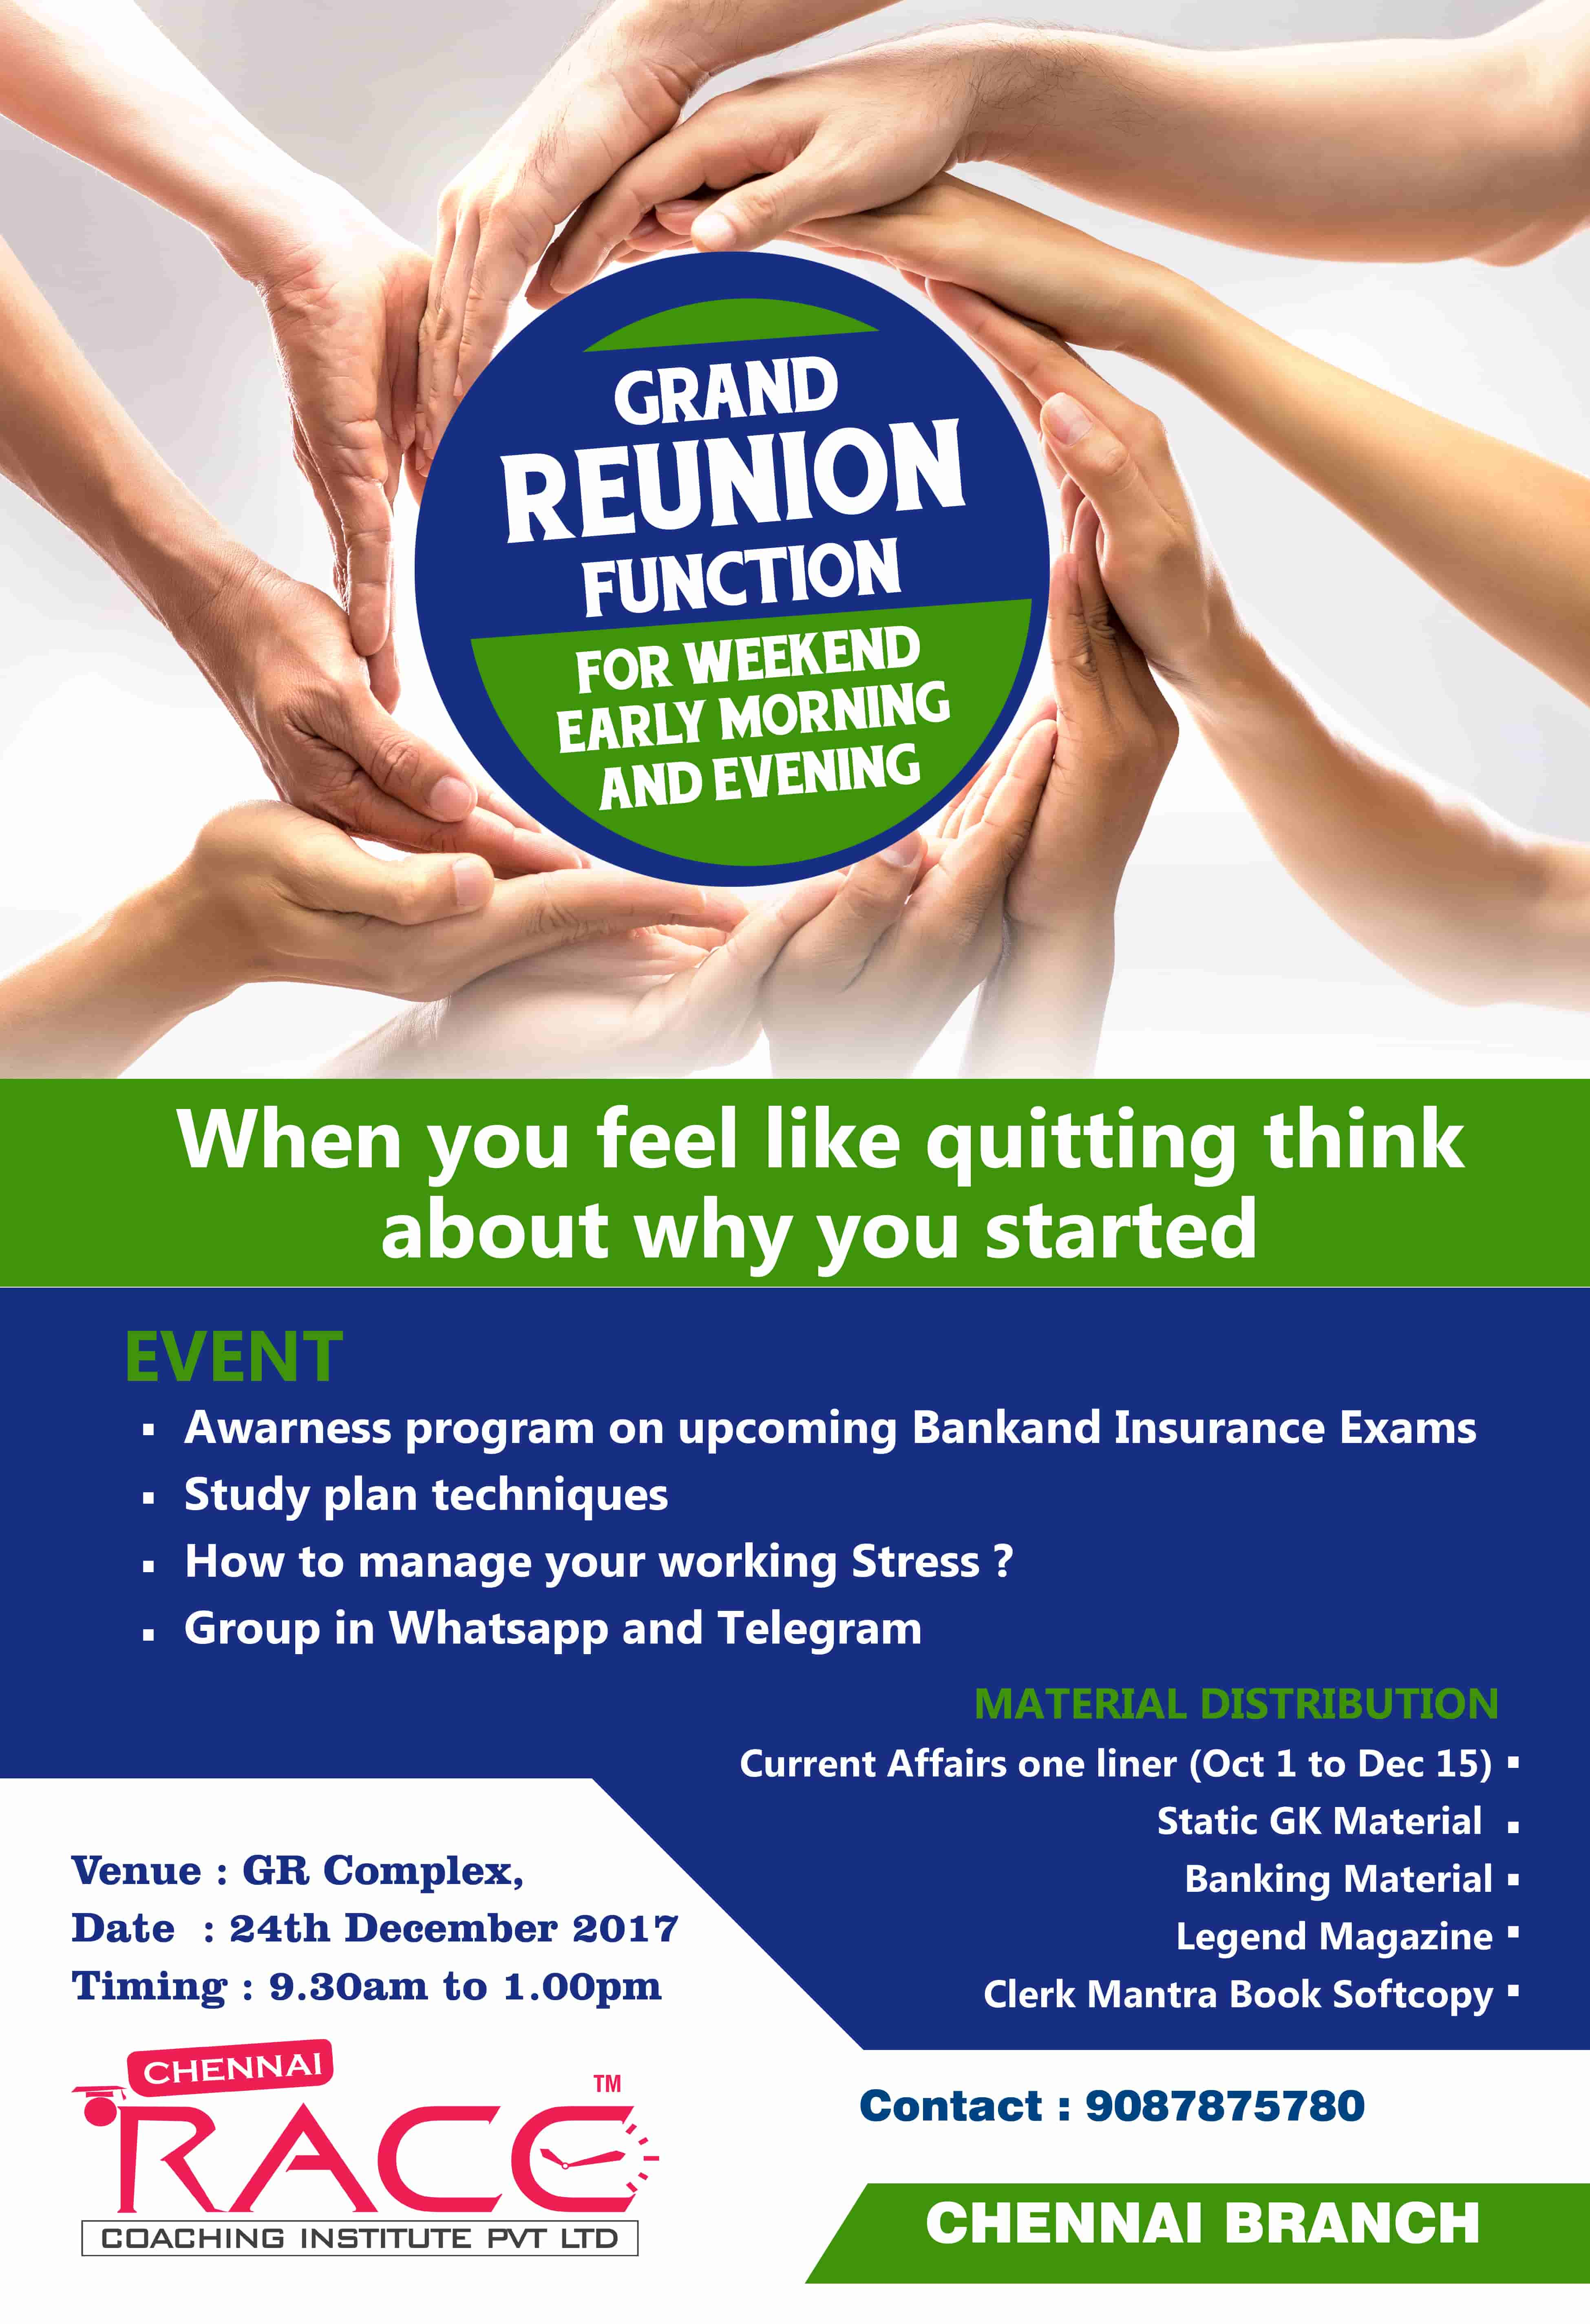 Grand reunion Function - for dropout students in chennai branch race institute